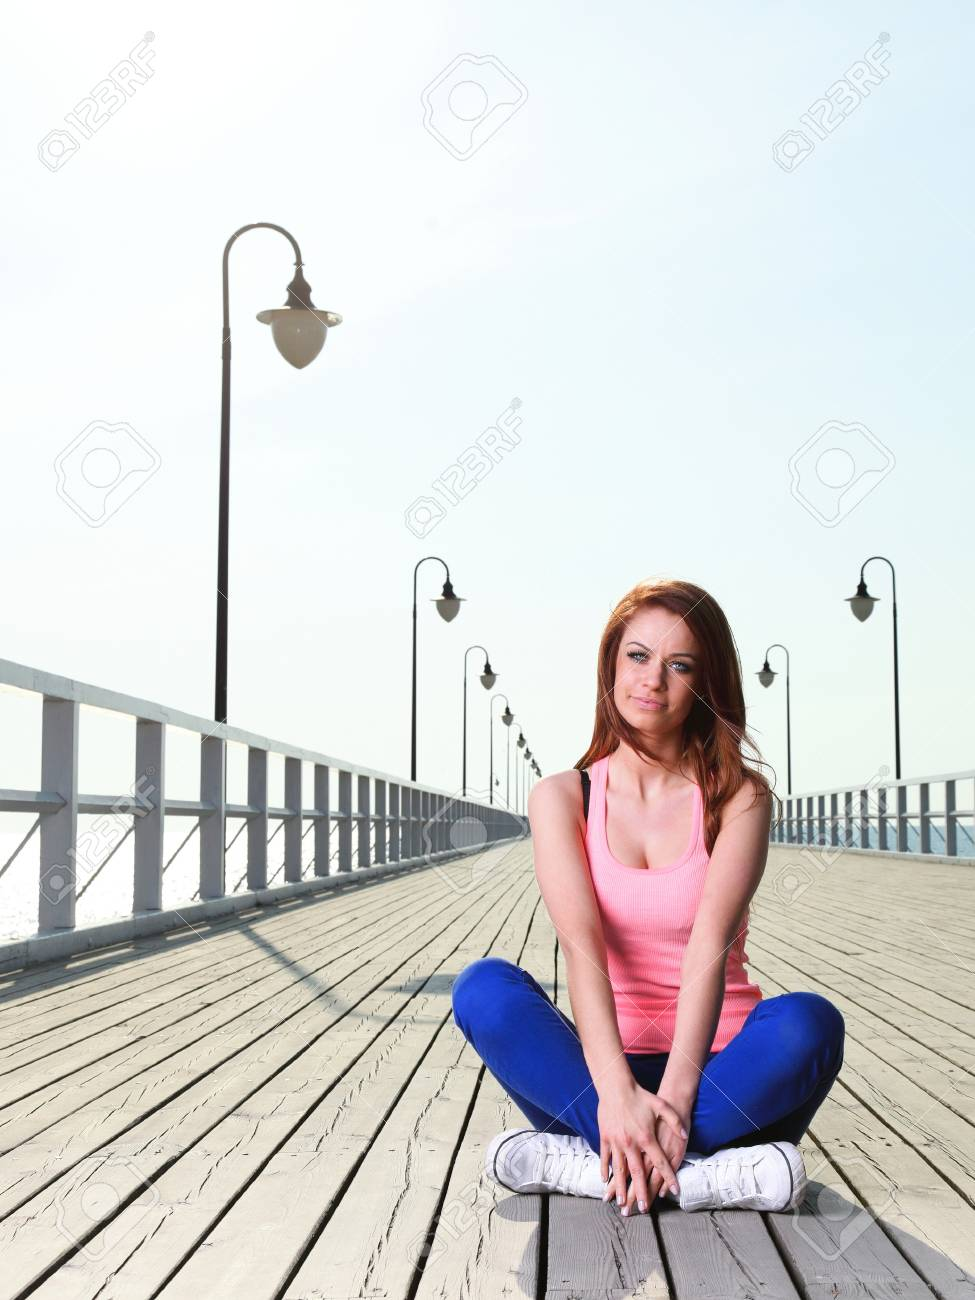 Attractive girl Young woman on pier Sits Crossed Legged Relaxing Old Wooden Pier Stock Photo - 15186451